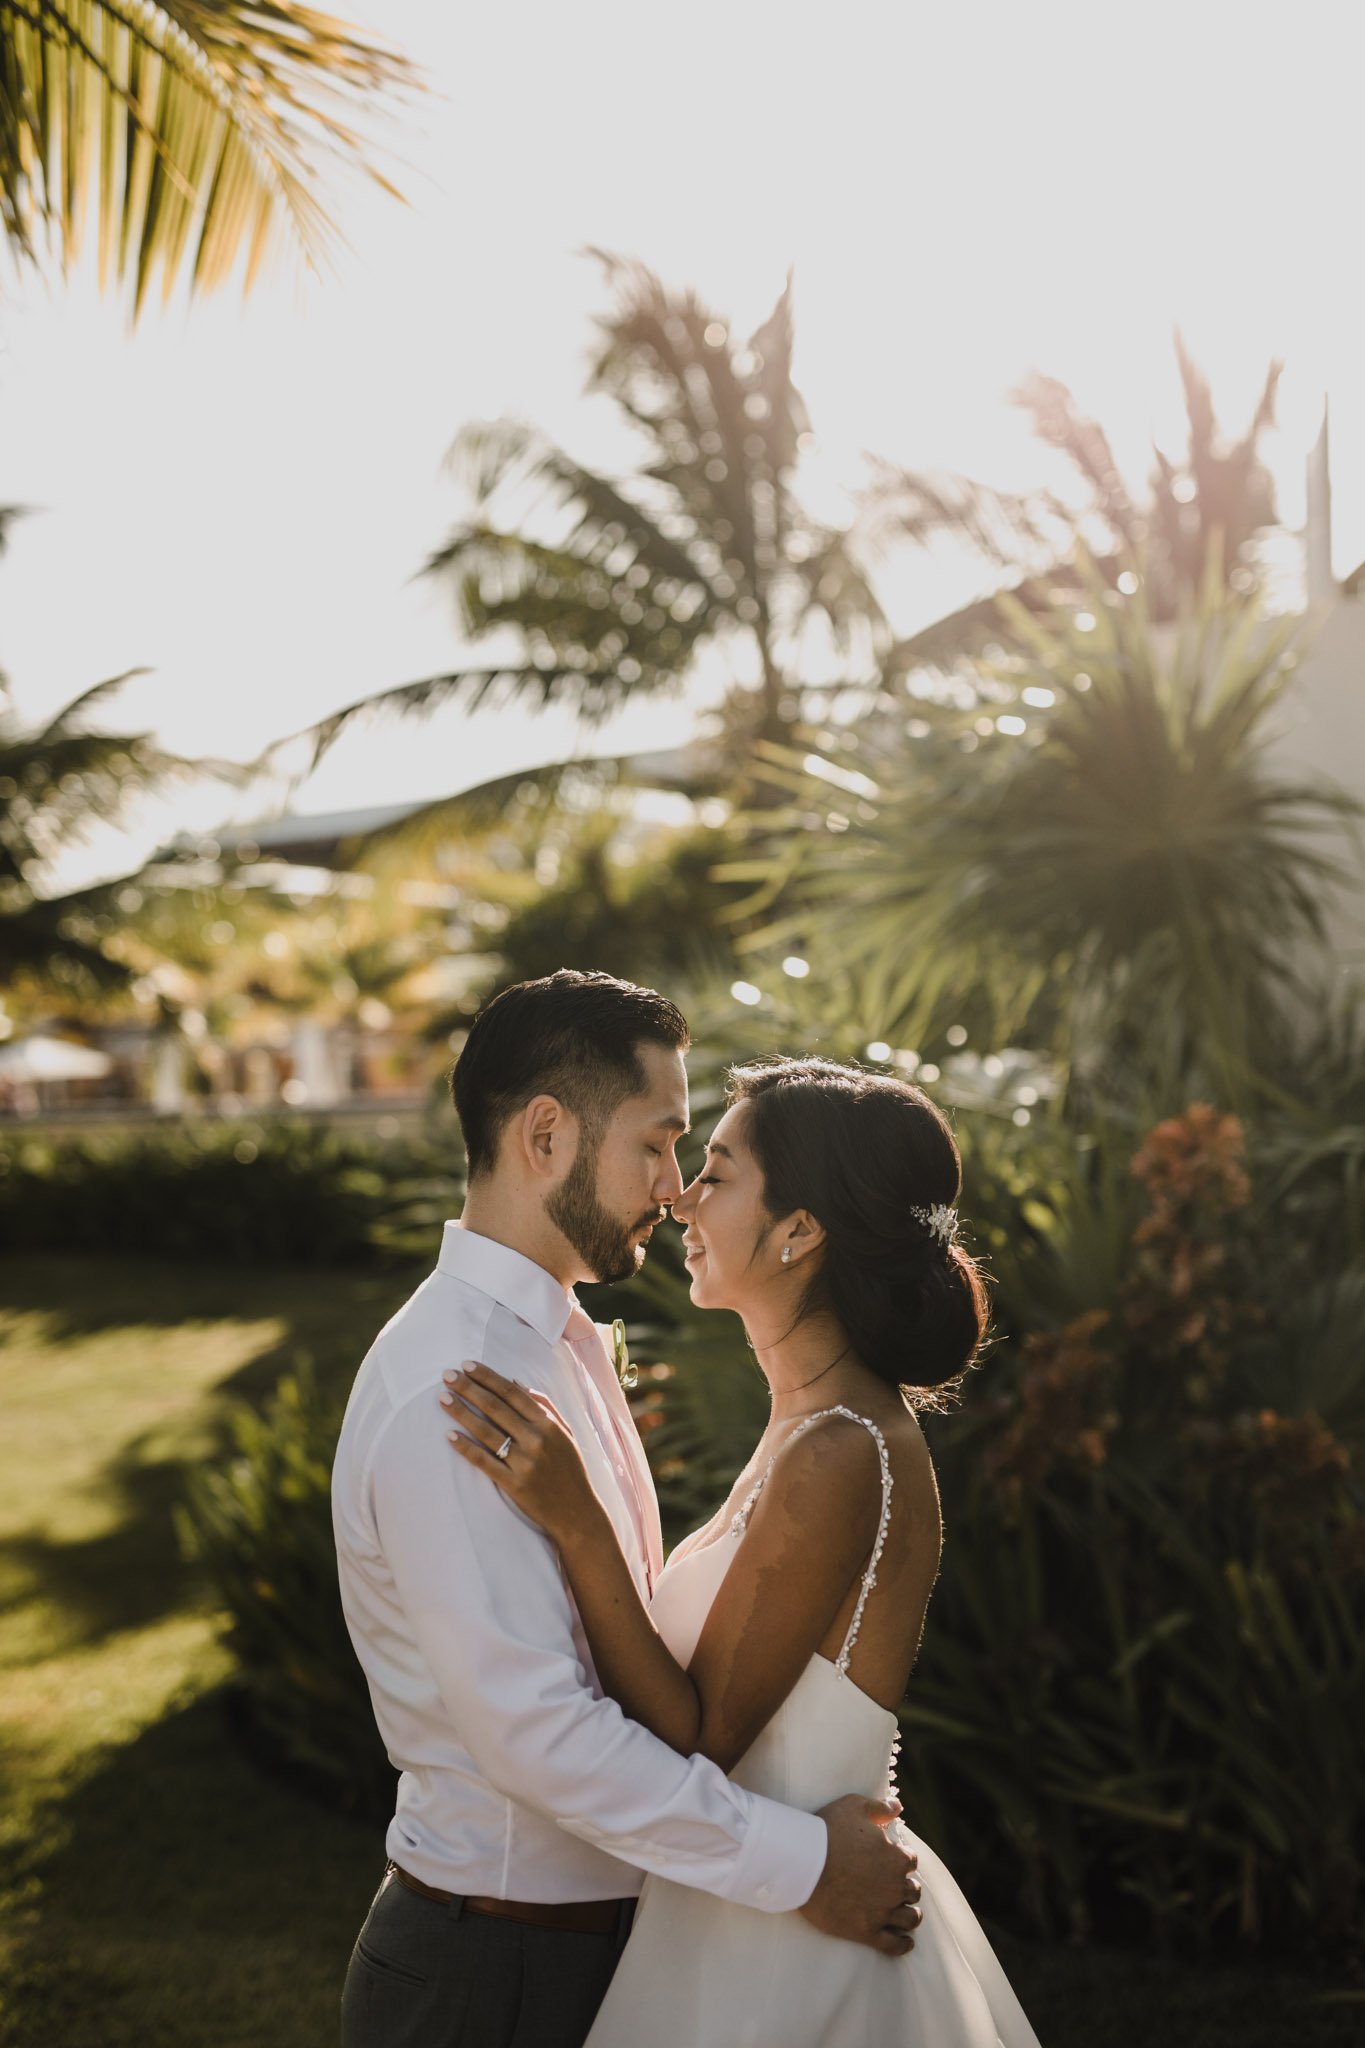 Cancun Mexico Wedding - nose to nose portrait